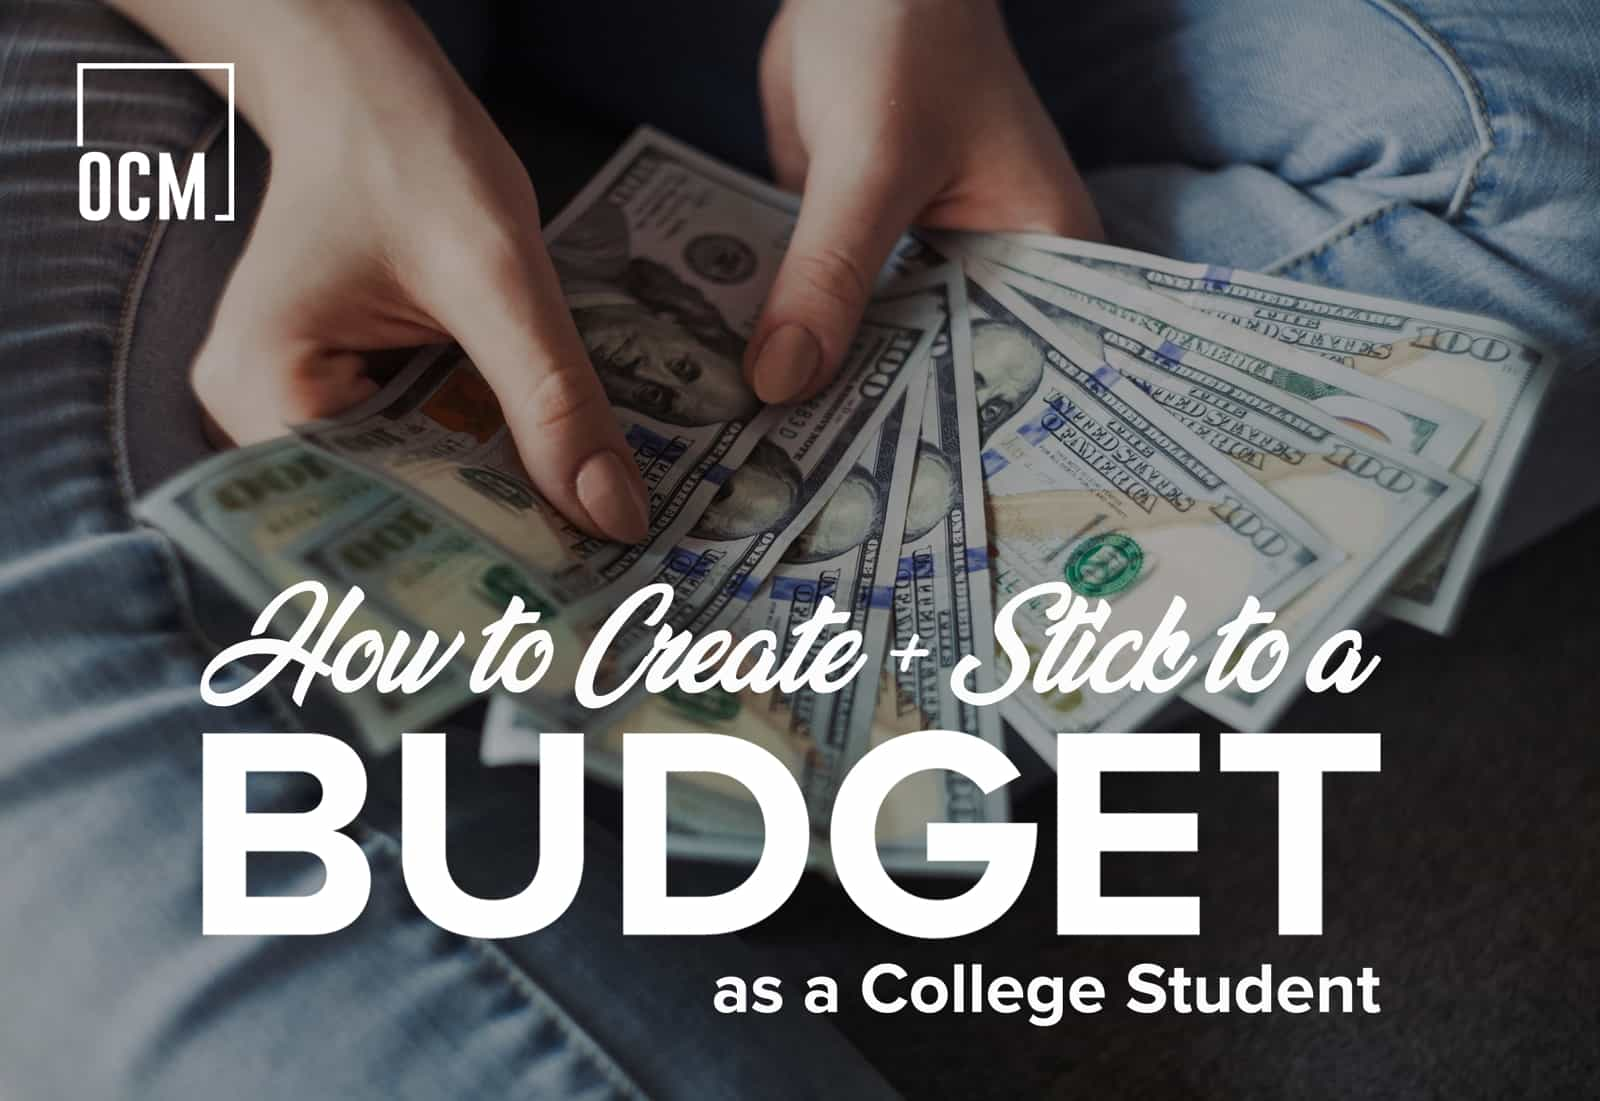 How to create + stick to a budget as a college student